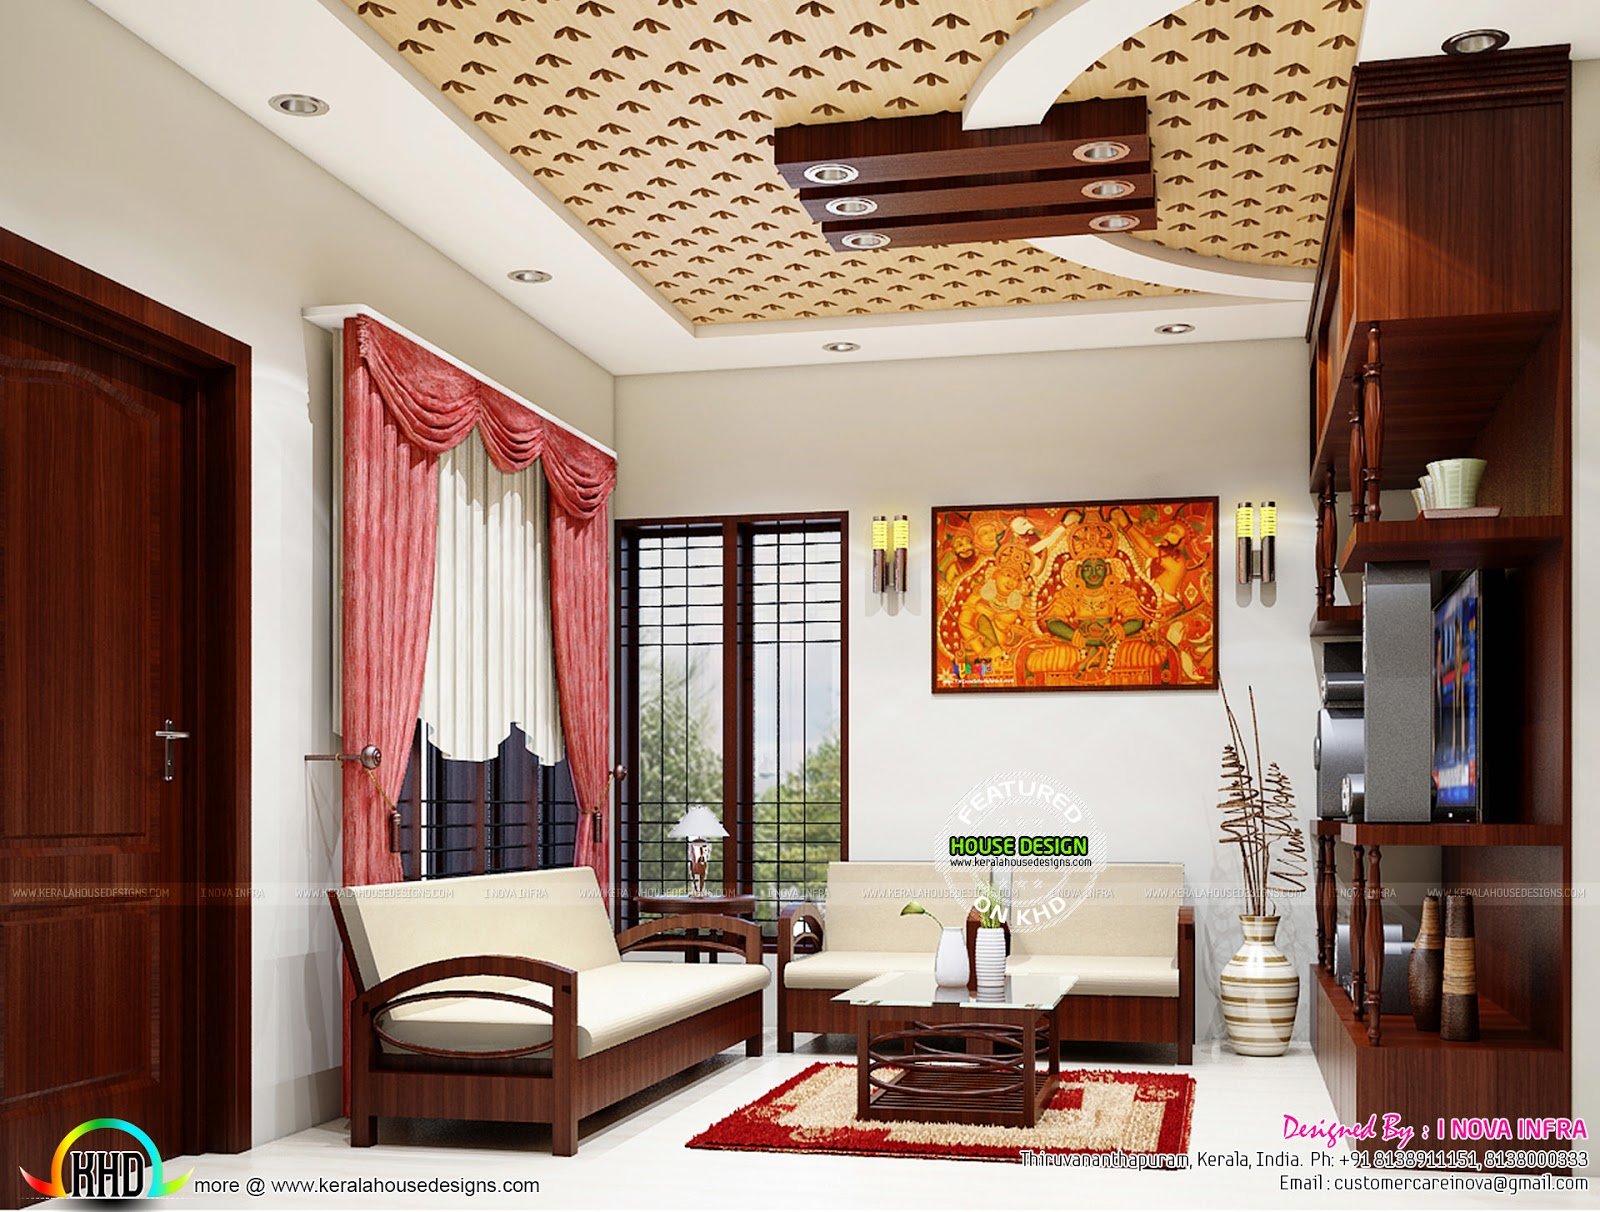 Kerala traditional interiors kerala home design and for Apartment interior designs india